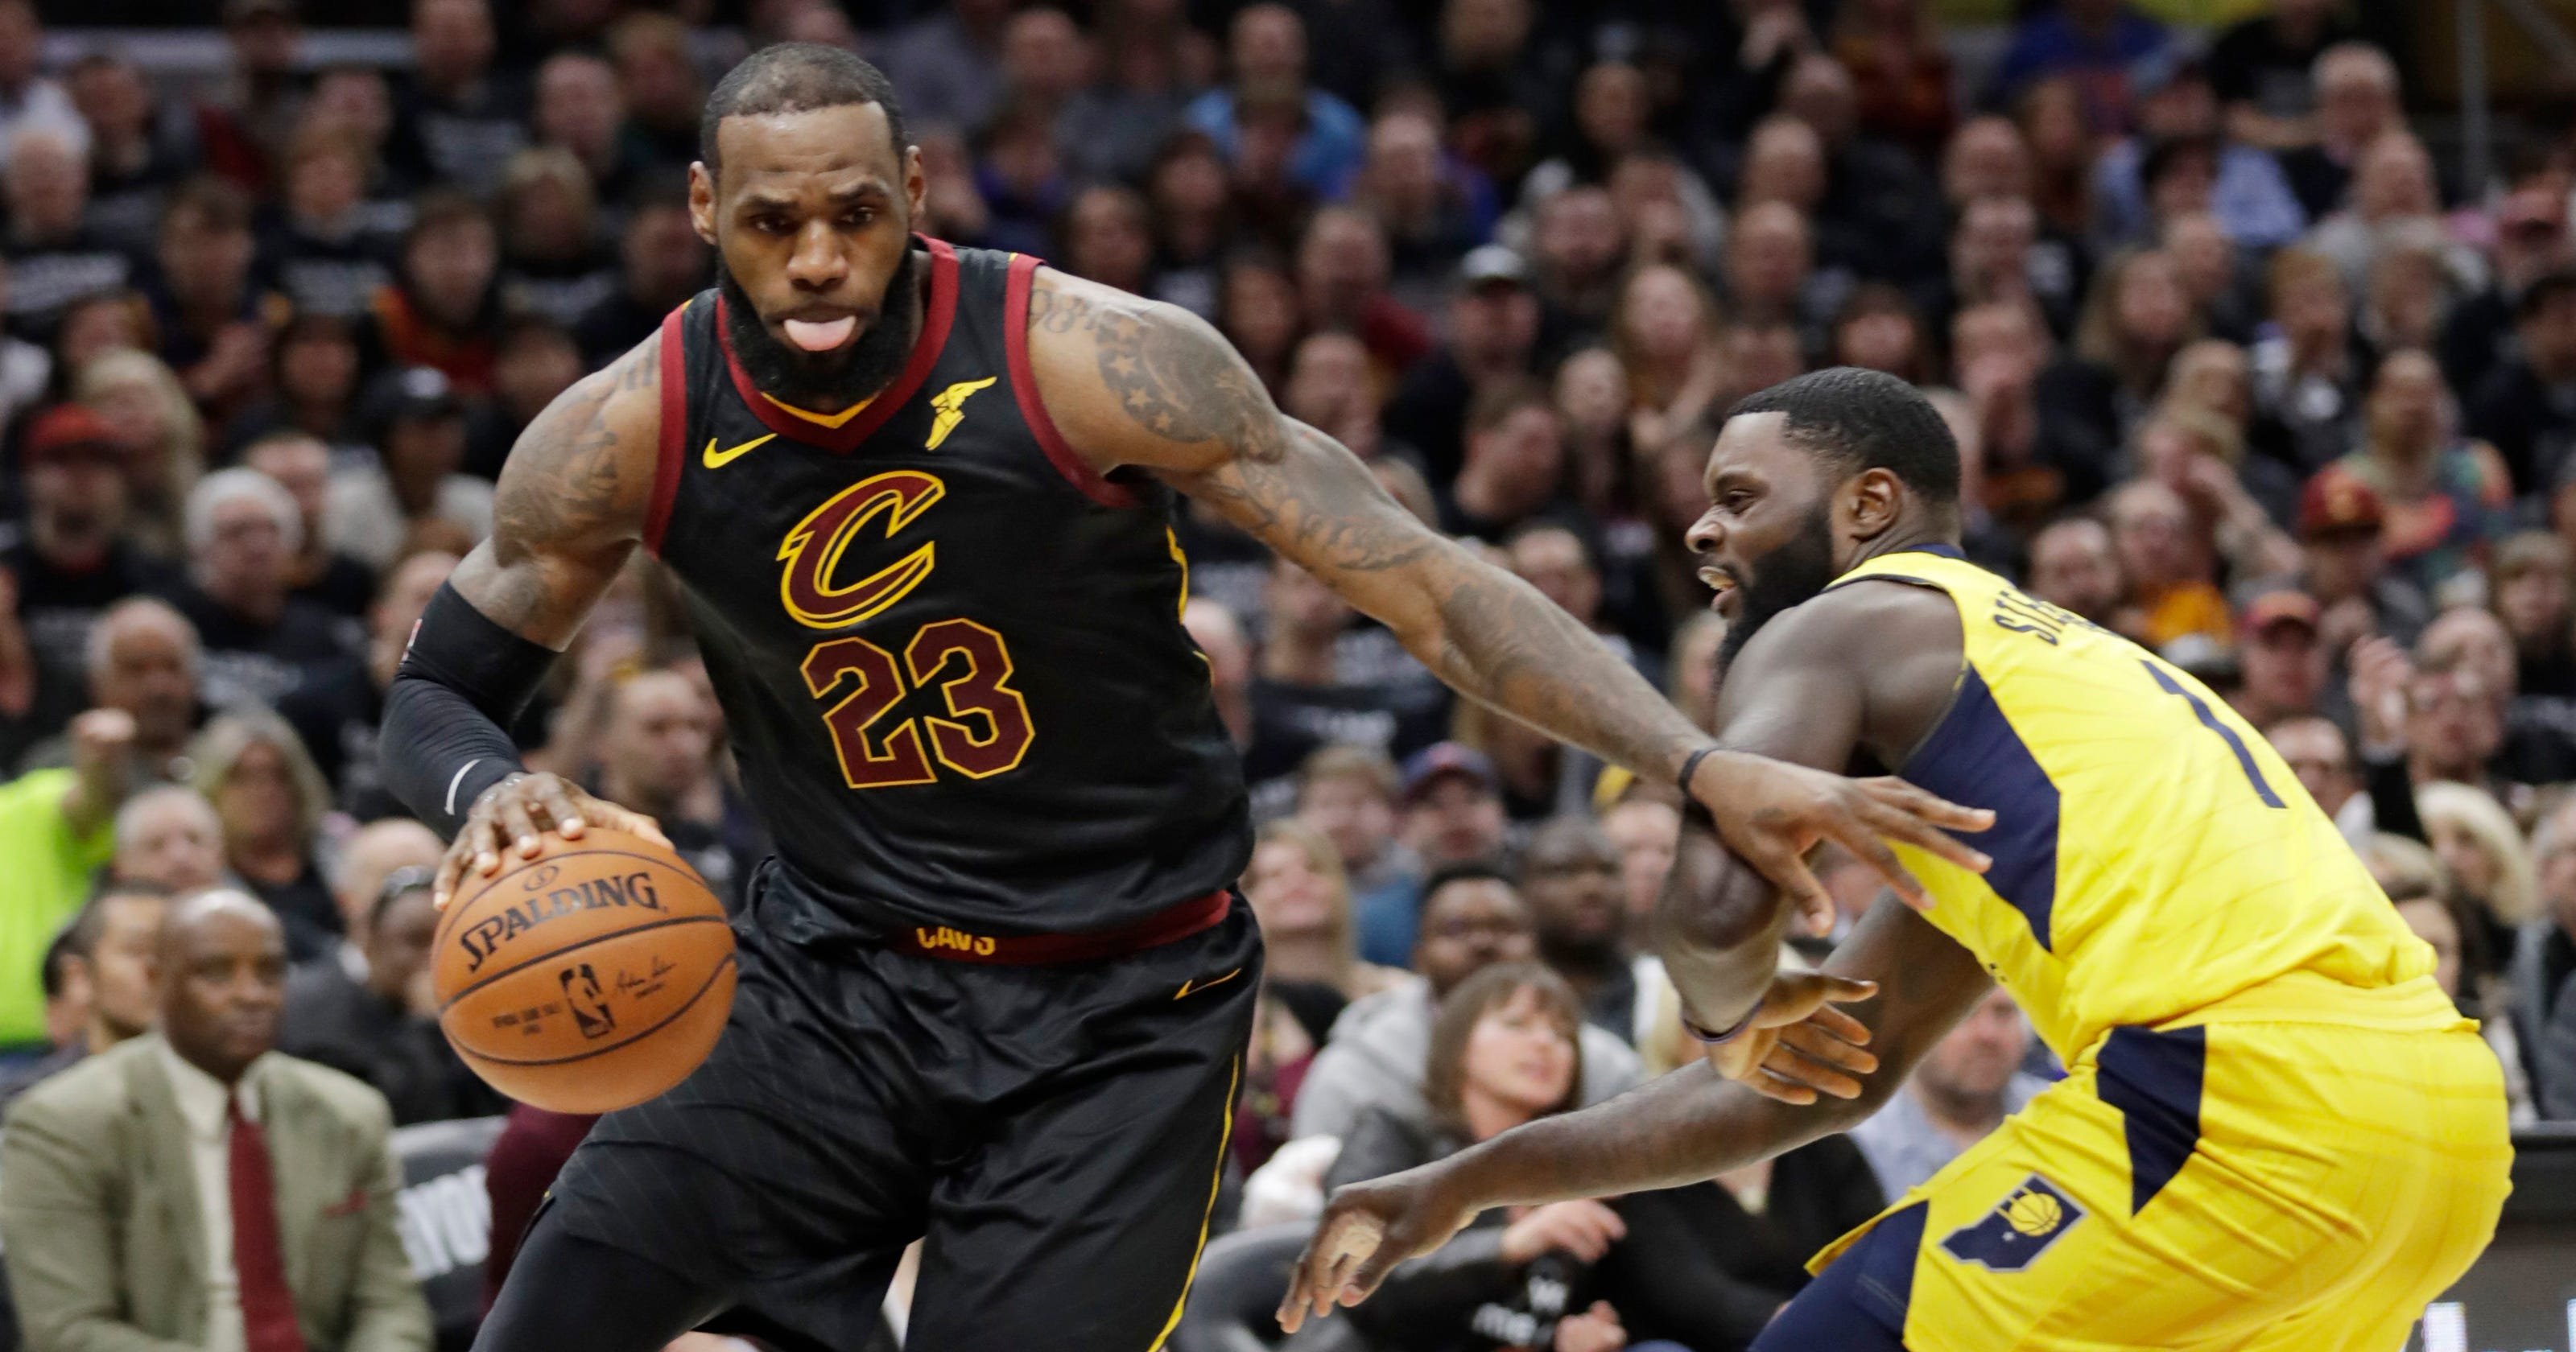 5a6bd0bec Why a Cleveland Cavaliers fan is happy LeBron James is going to the Lakers